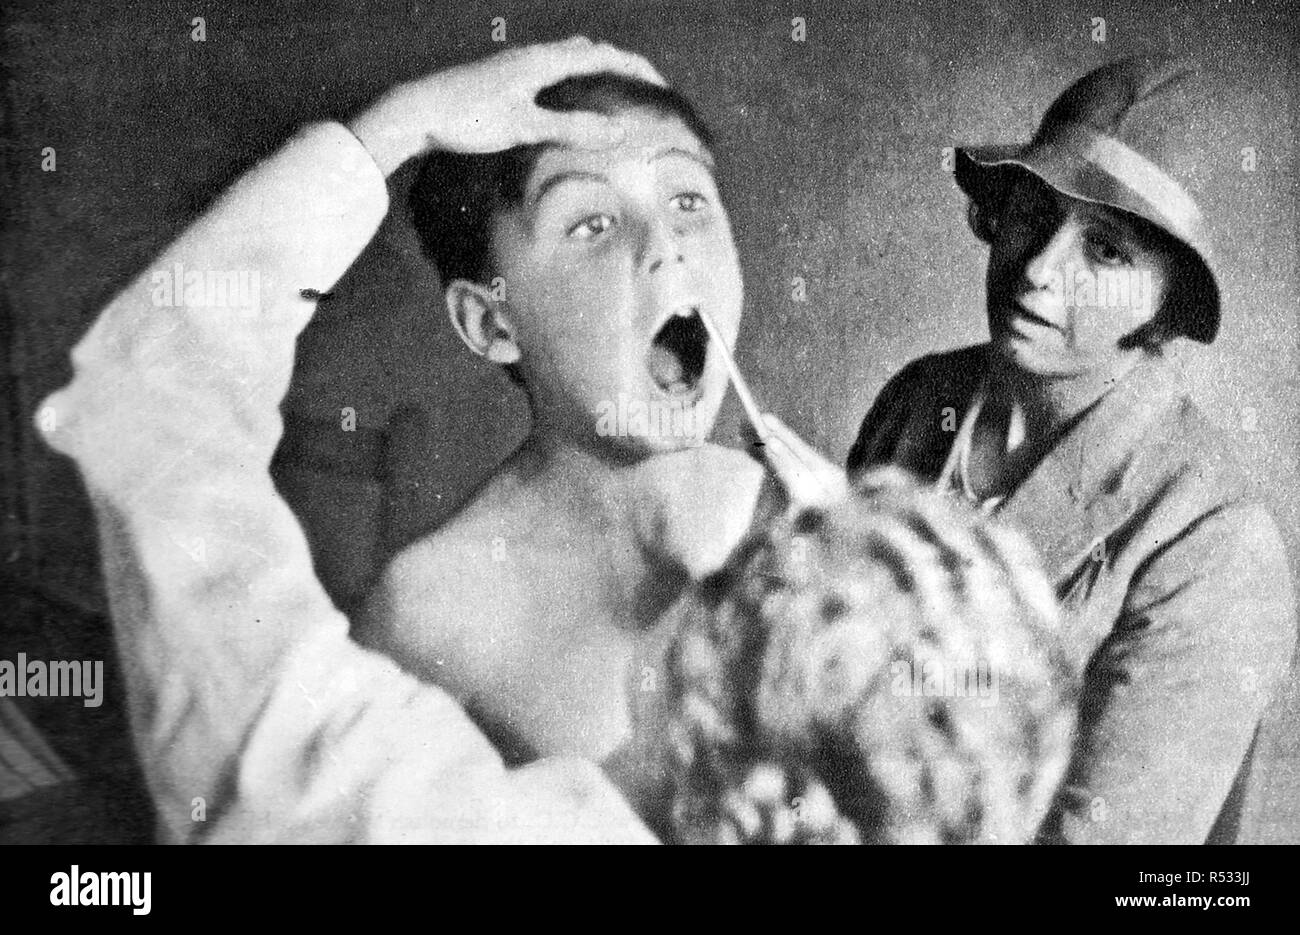 1934, Examining the teeth of a school pupil at one of the new school dental clinics. A boy is accompanied by his mother - Stock Image